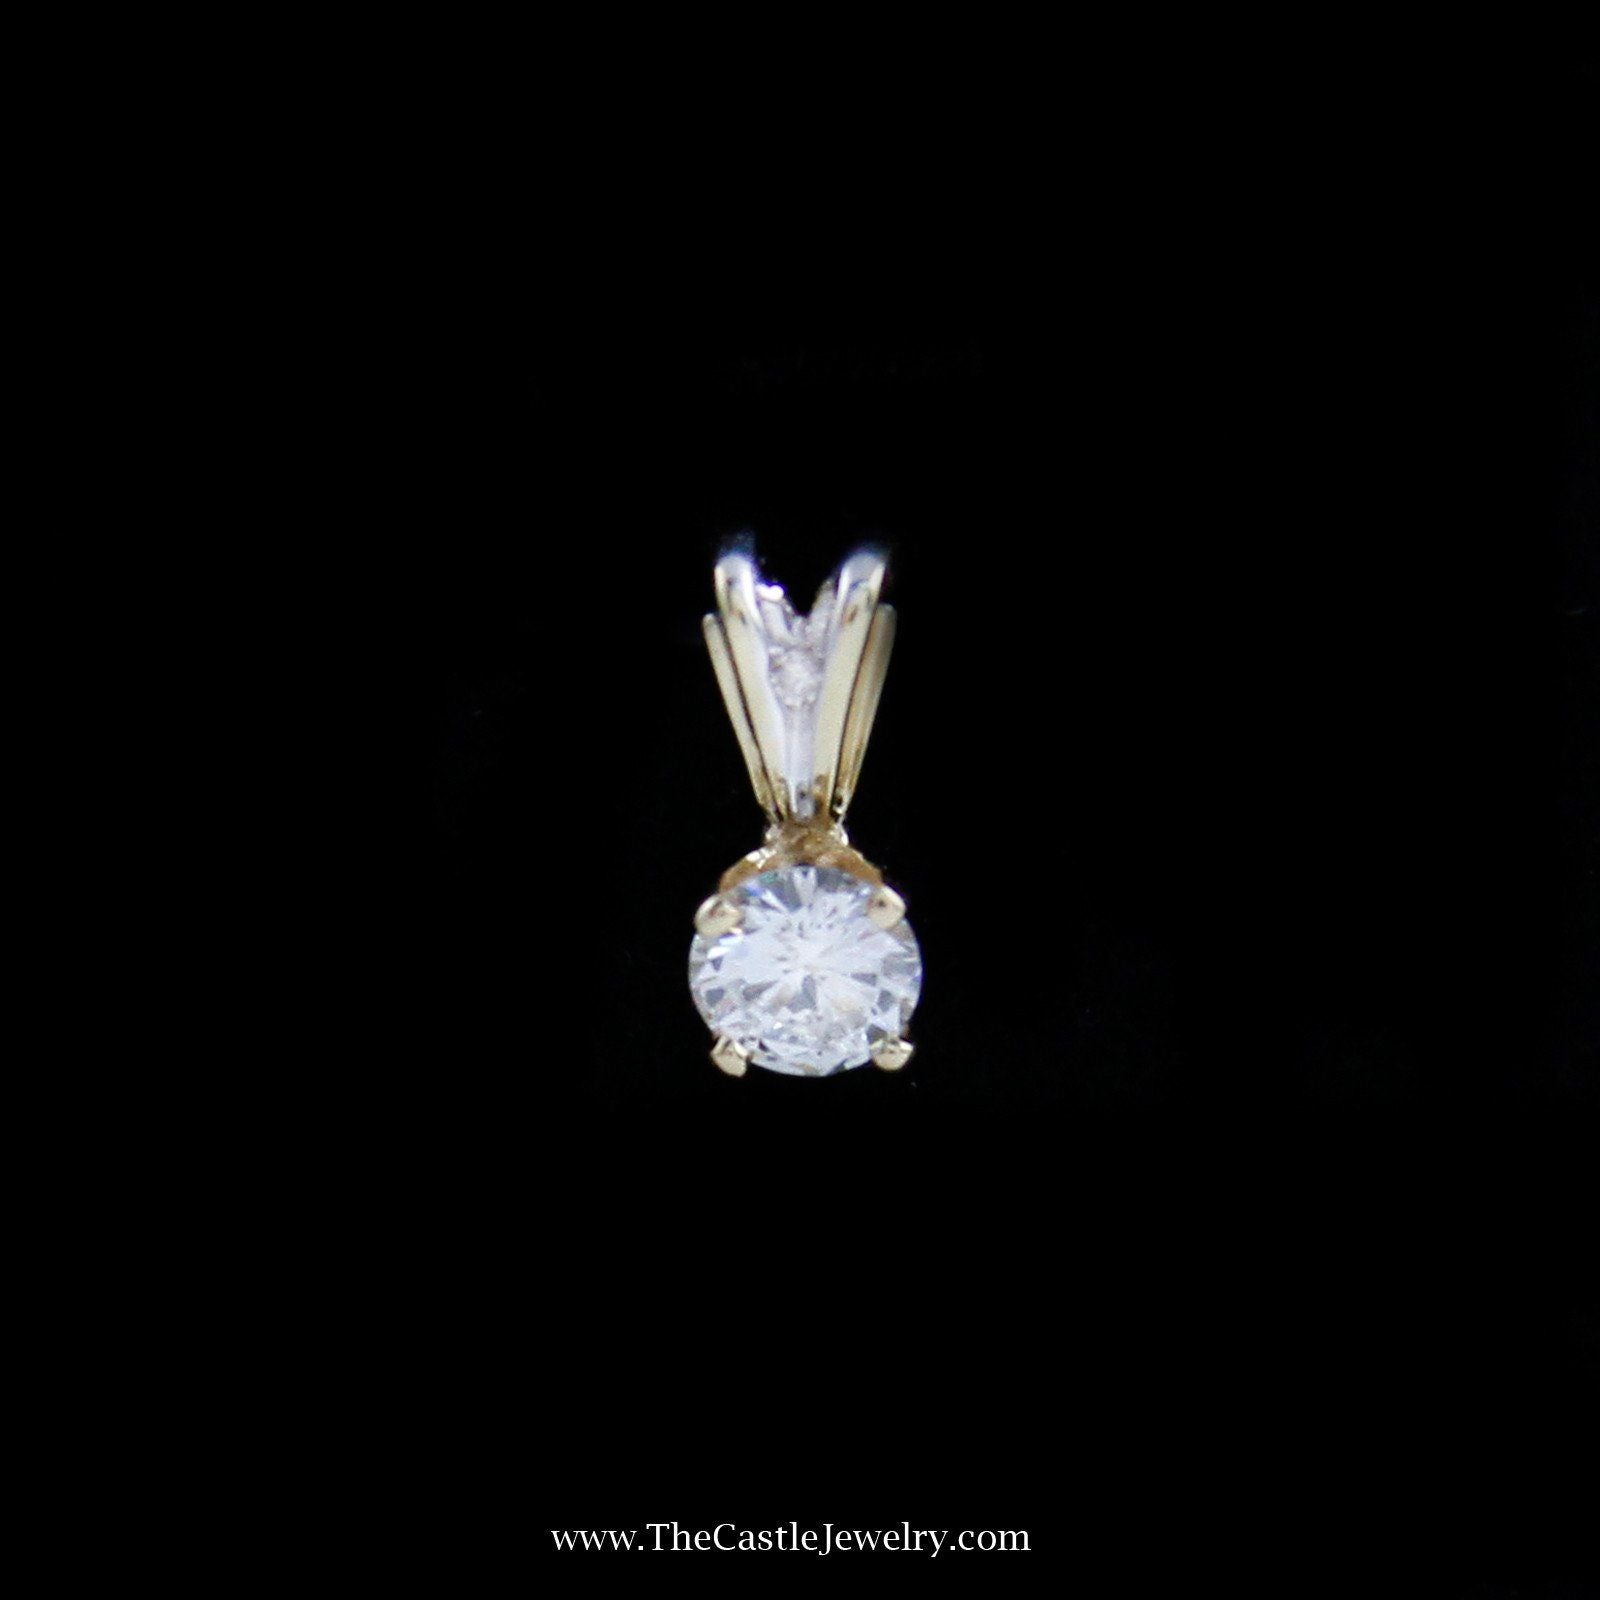 Lovely Round Brilliant Cut Diamond Solitaire Pendant in 14K Yellow Gold